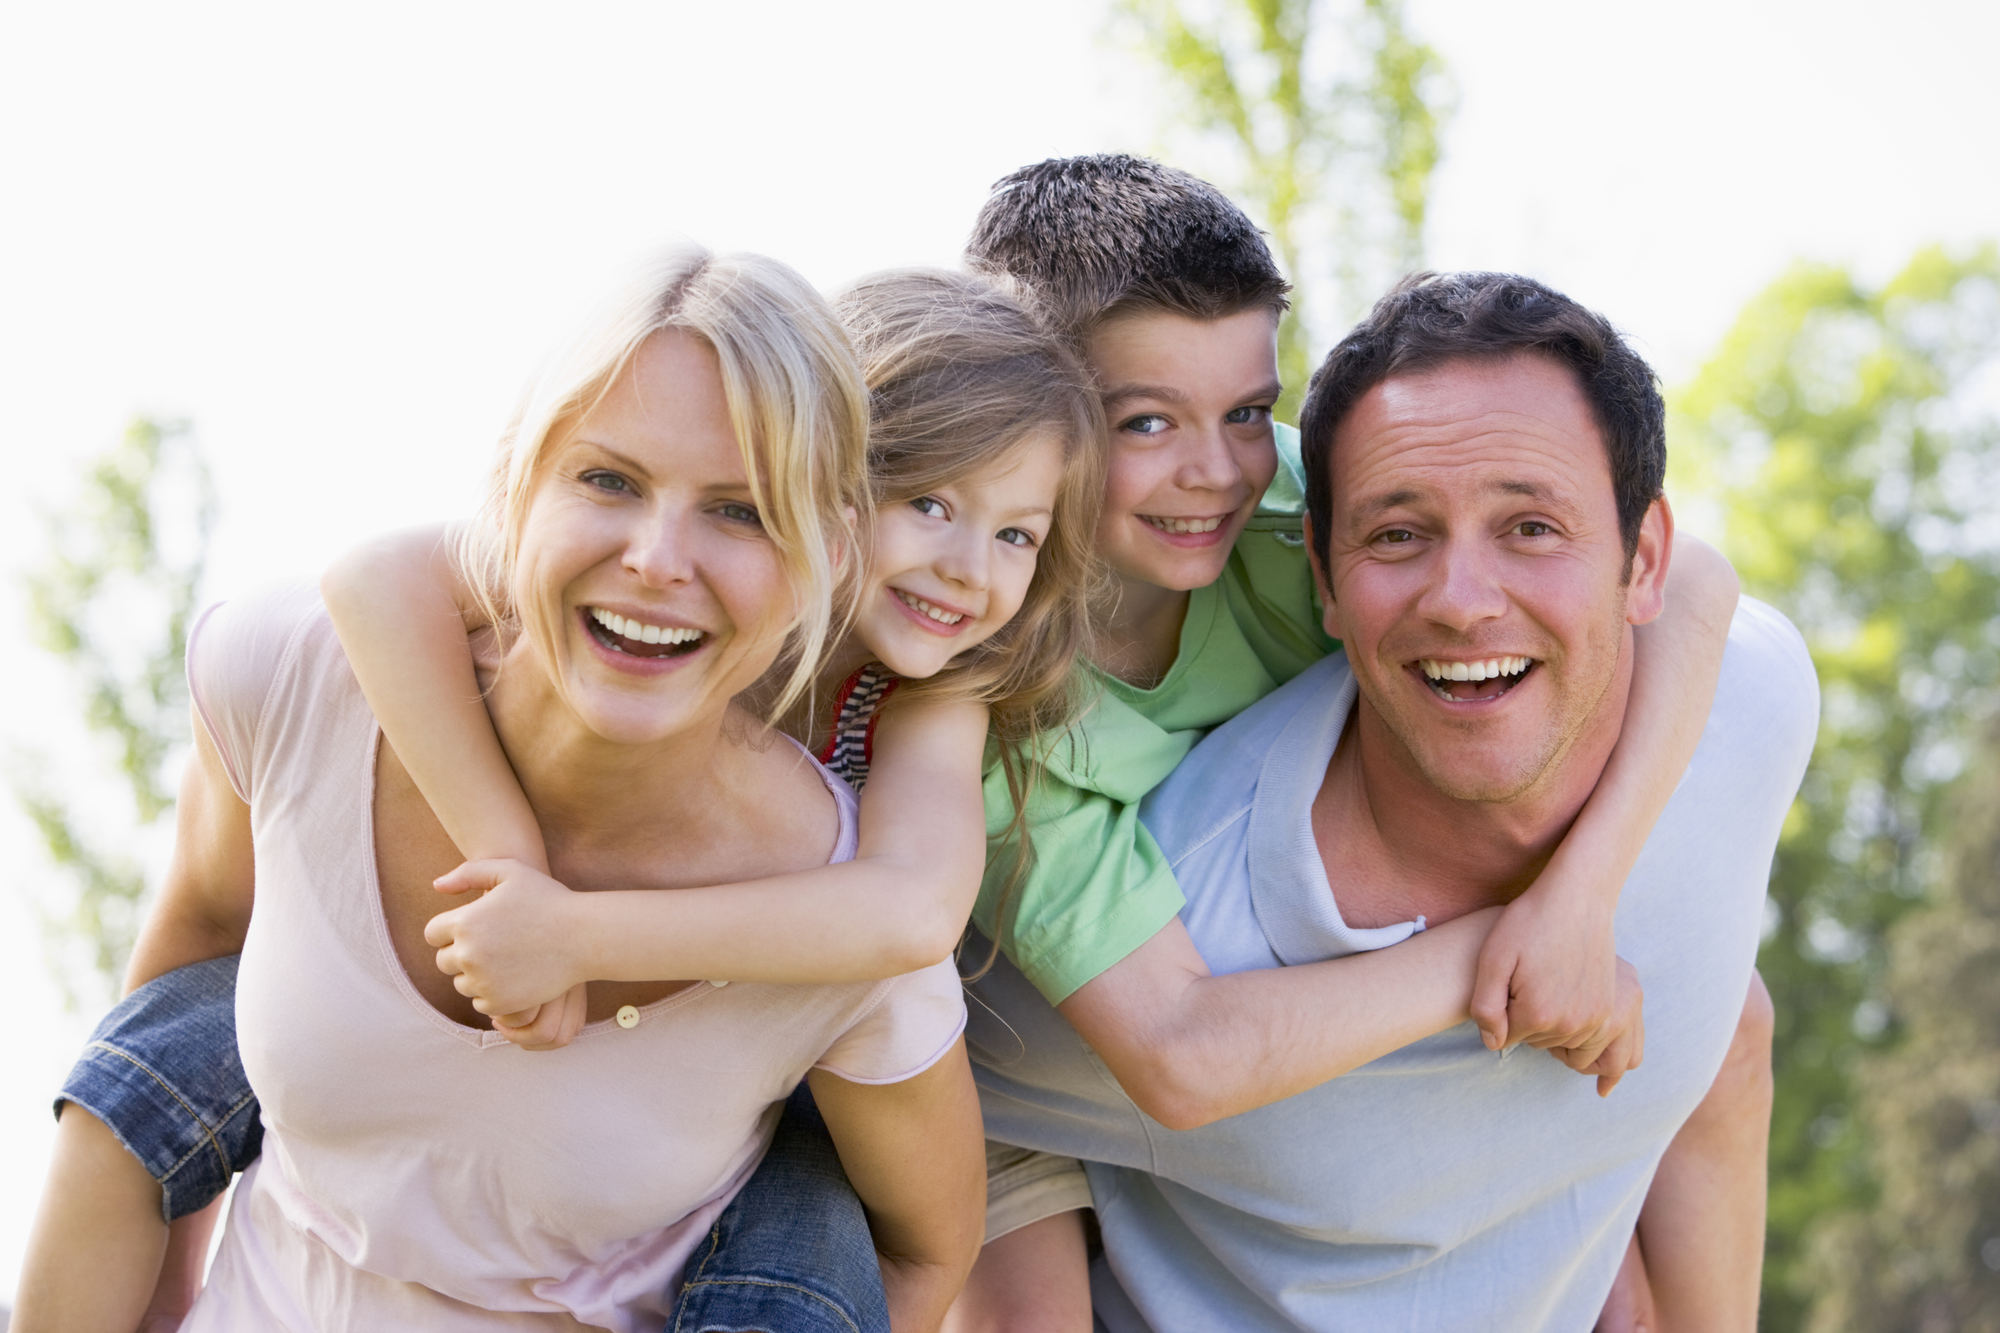 who can help me find the best family dentist in west palm beach?